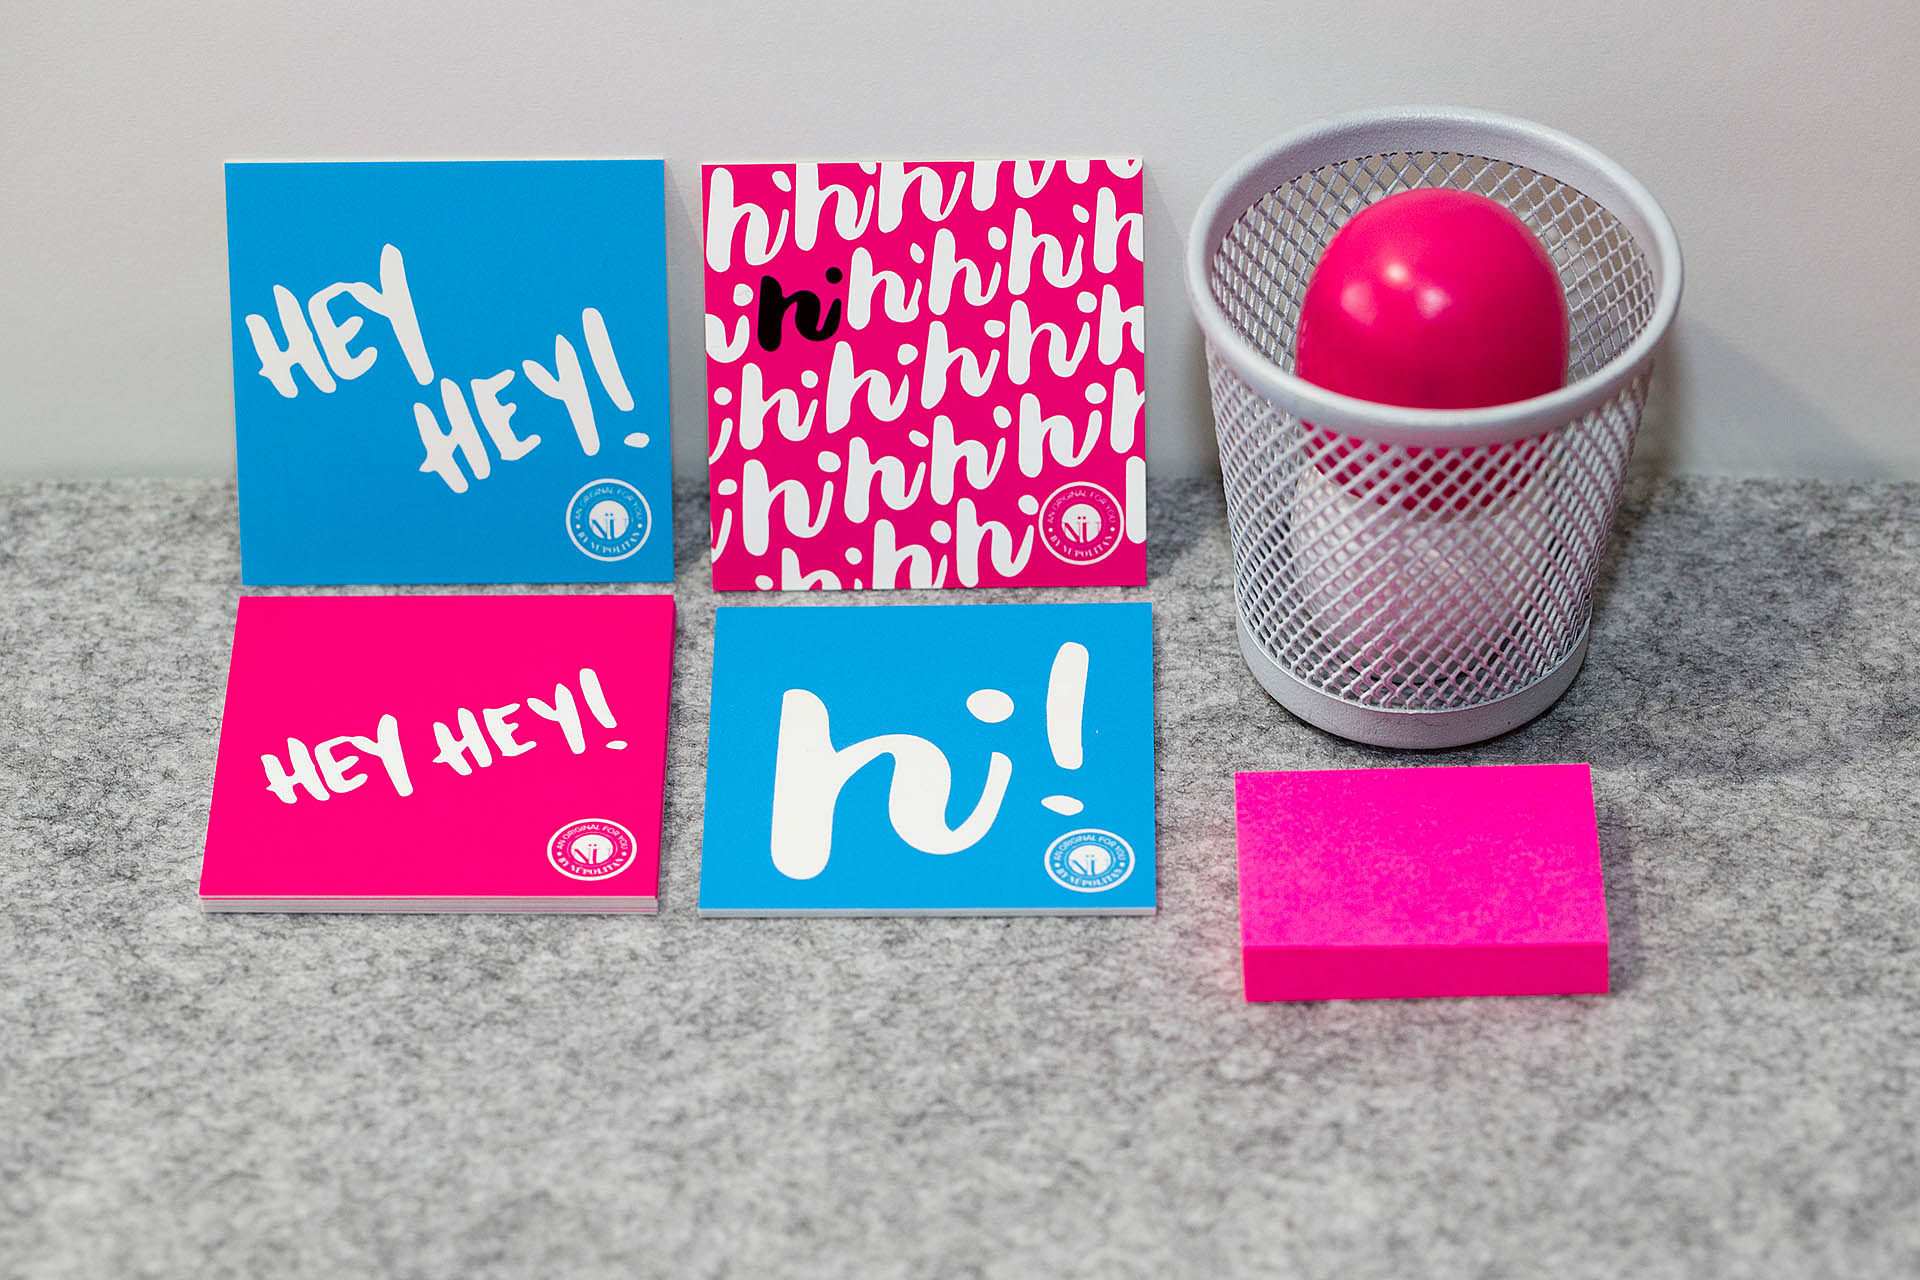 Two blue and two pink cards, a gray pencil cup, and pink post-it notes on gray felt